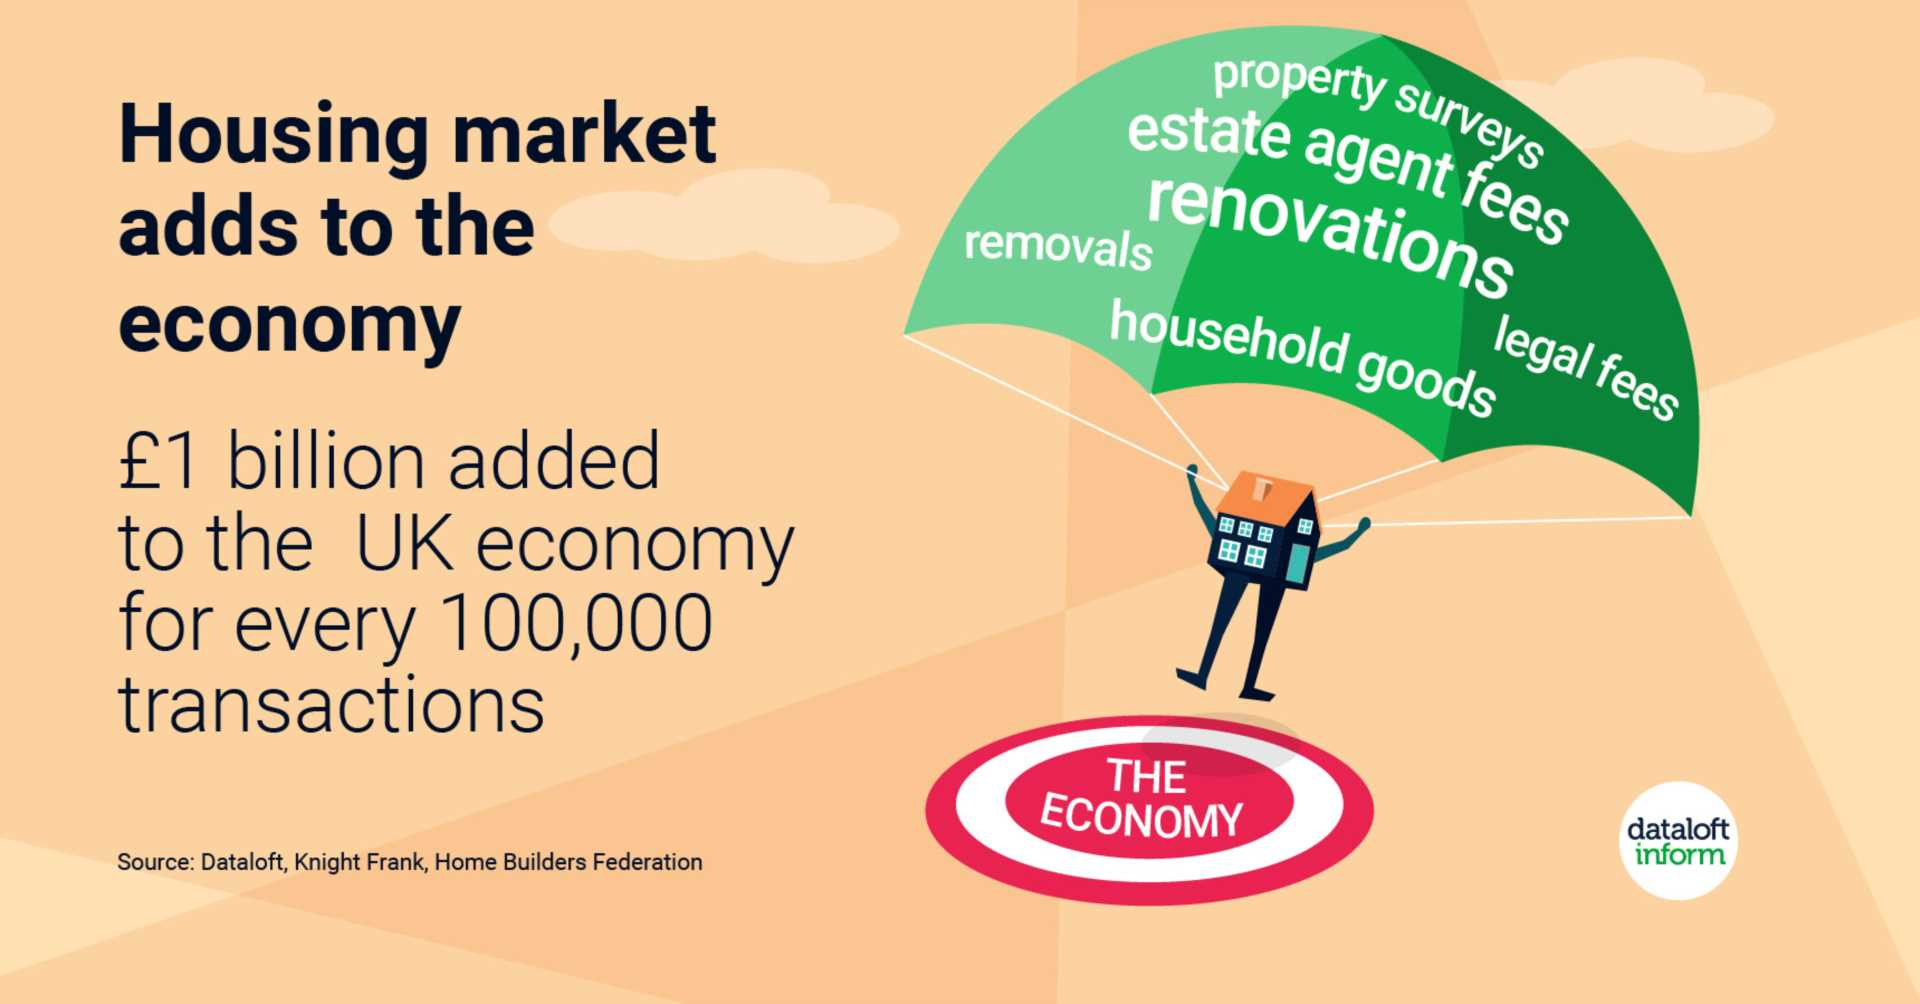 Housing market adds to the economy